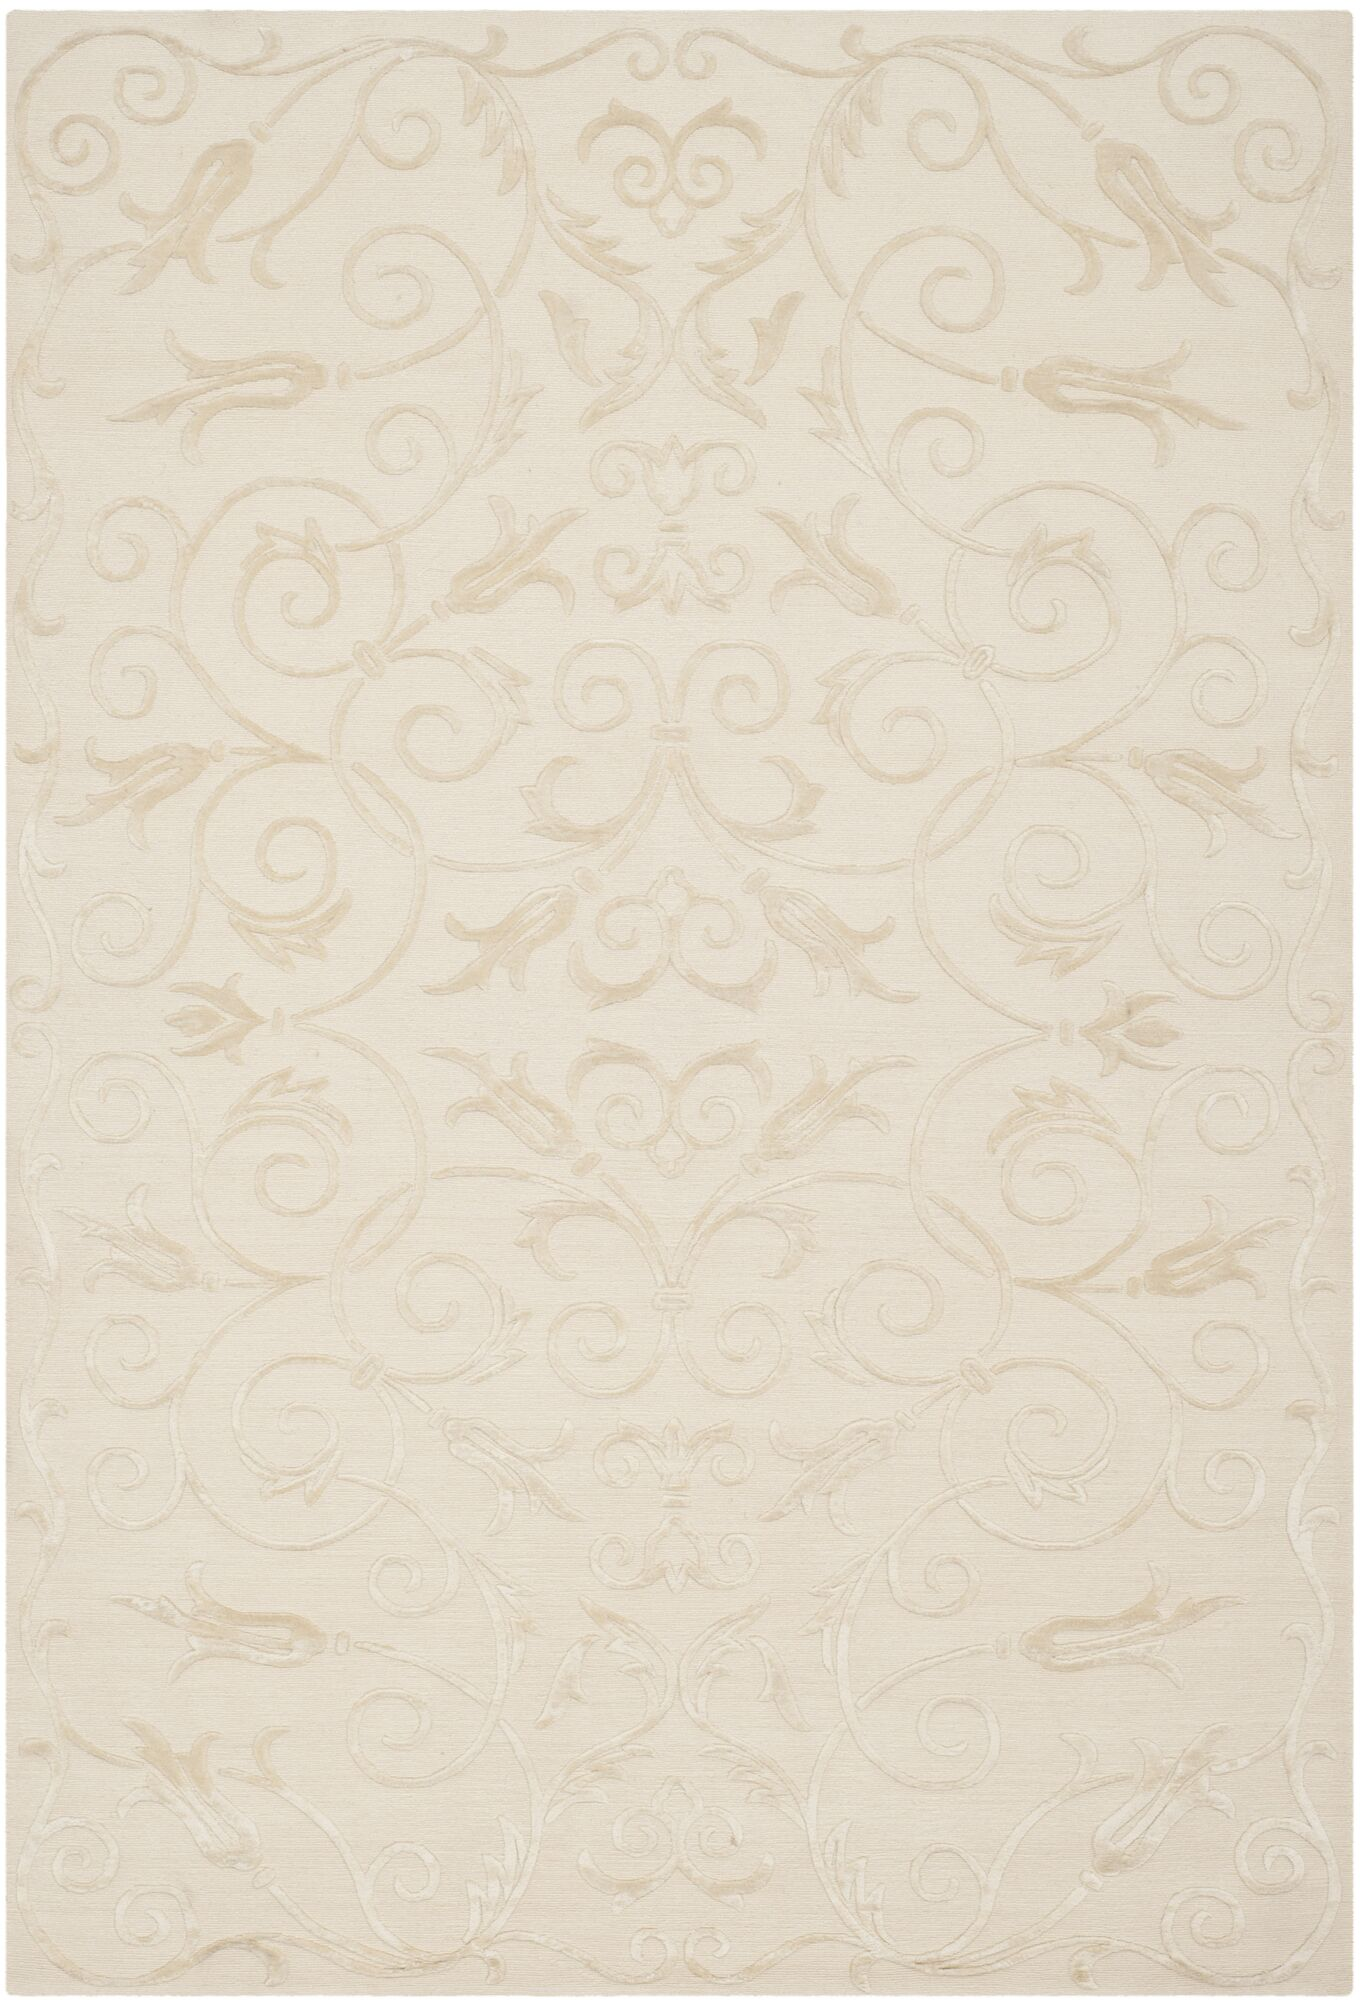 Tibetan Hand-Knotted Wool Pearl Area Rug Rug Size: Rectangle 6' x 9'